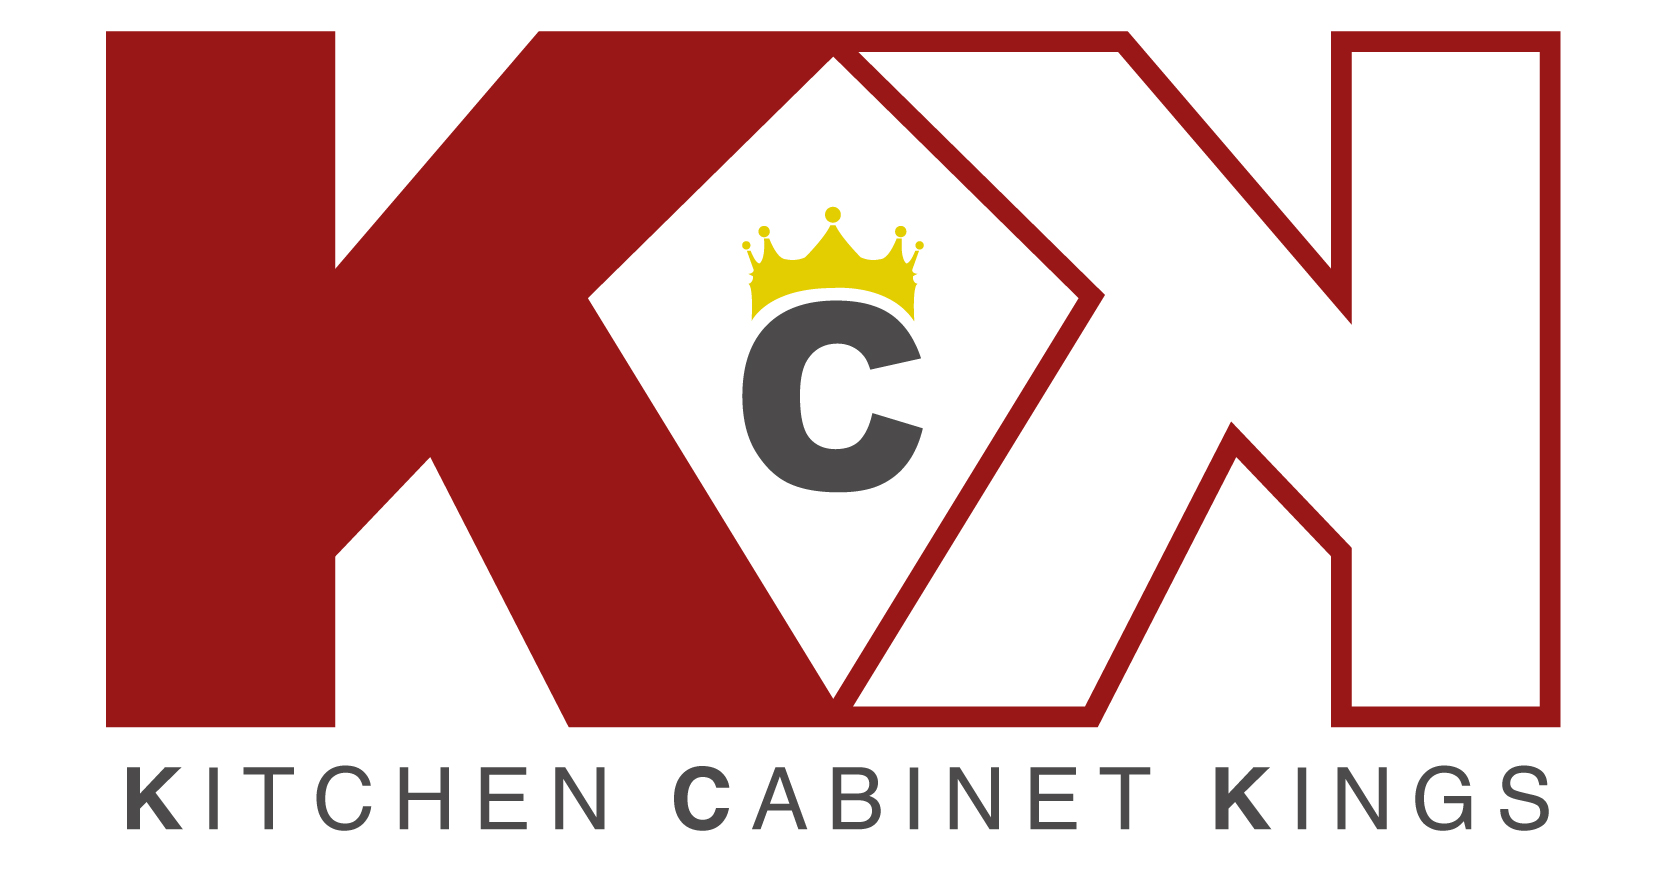 Kitchen Cabinet Kings Announces Black Friday Super Weekend ...